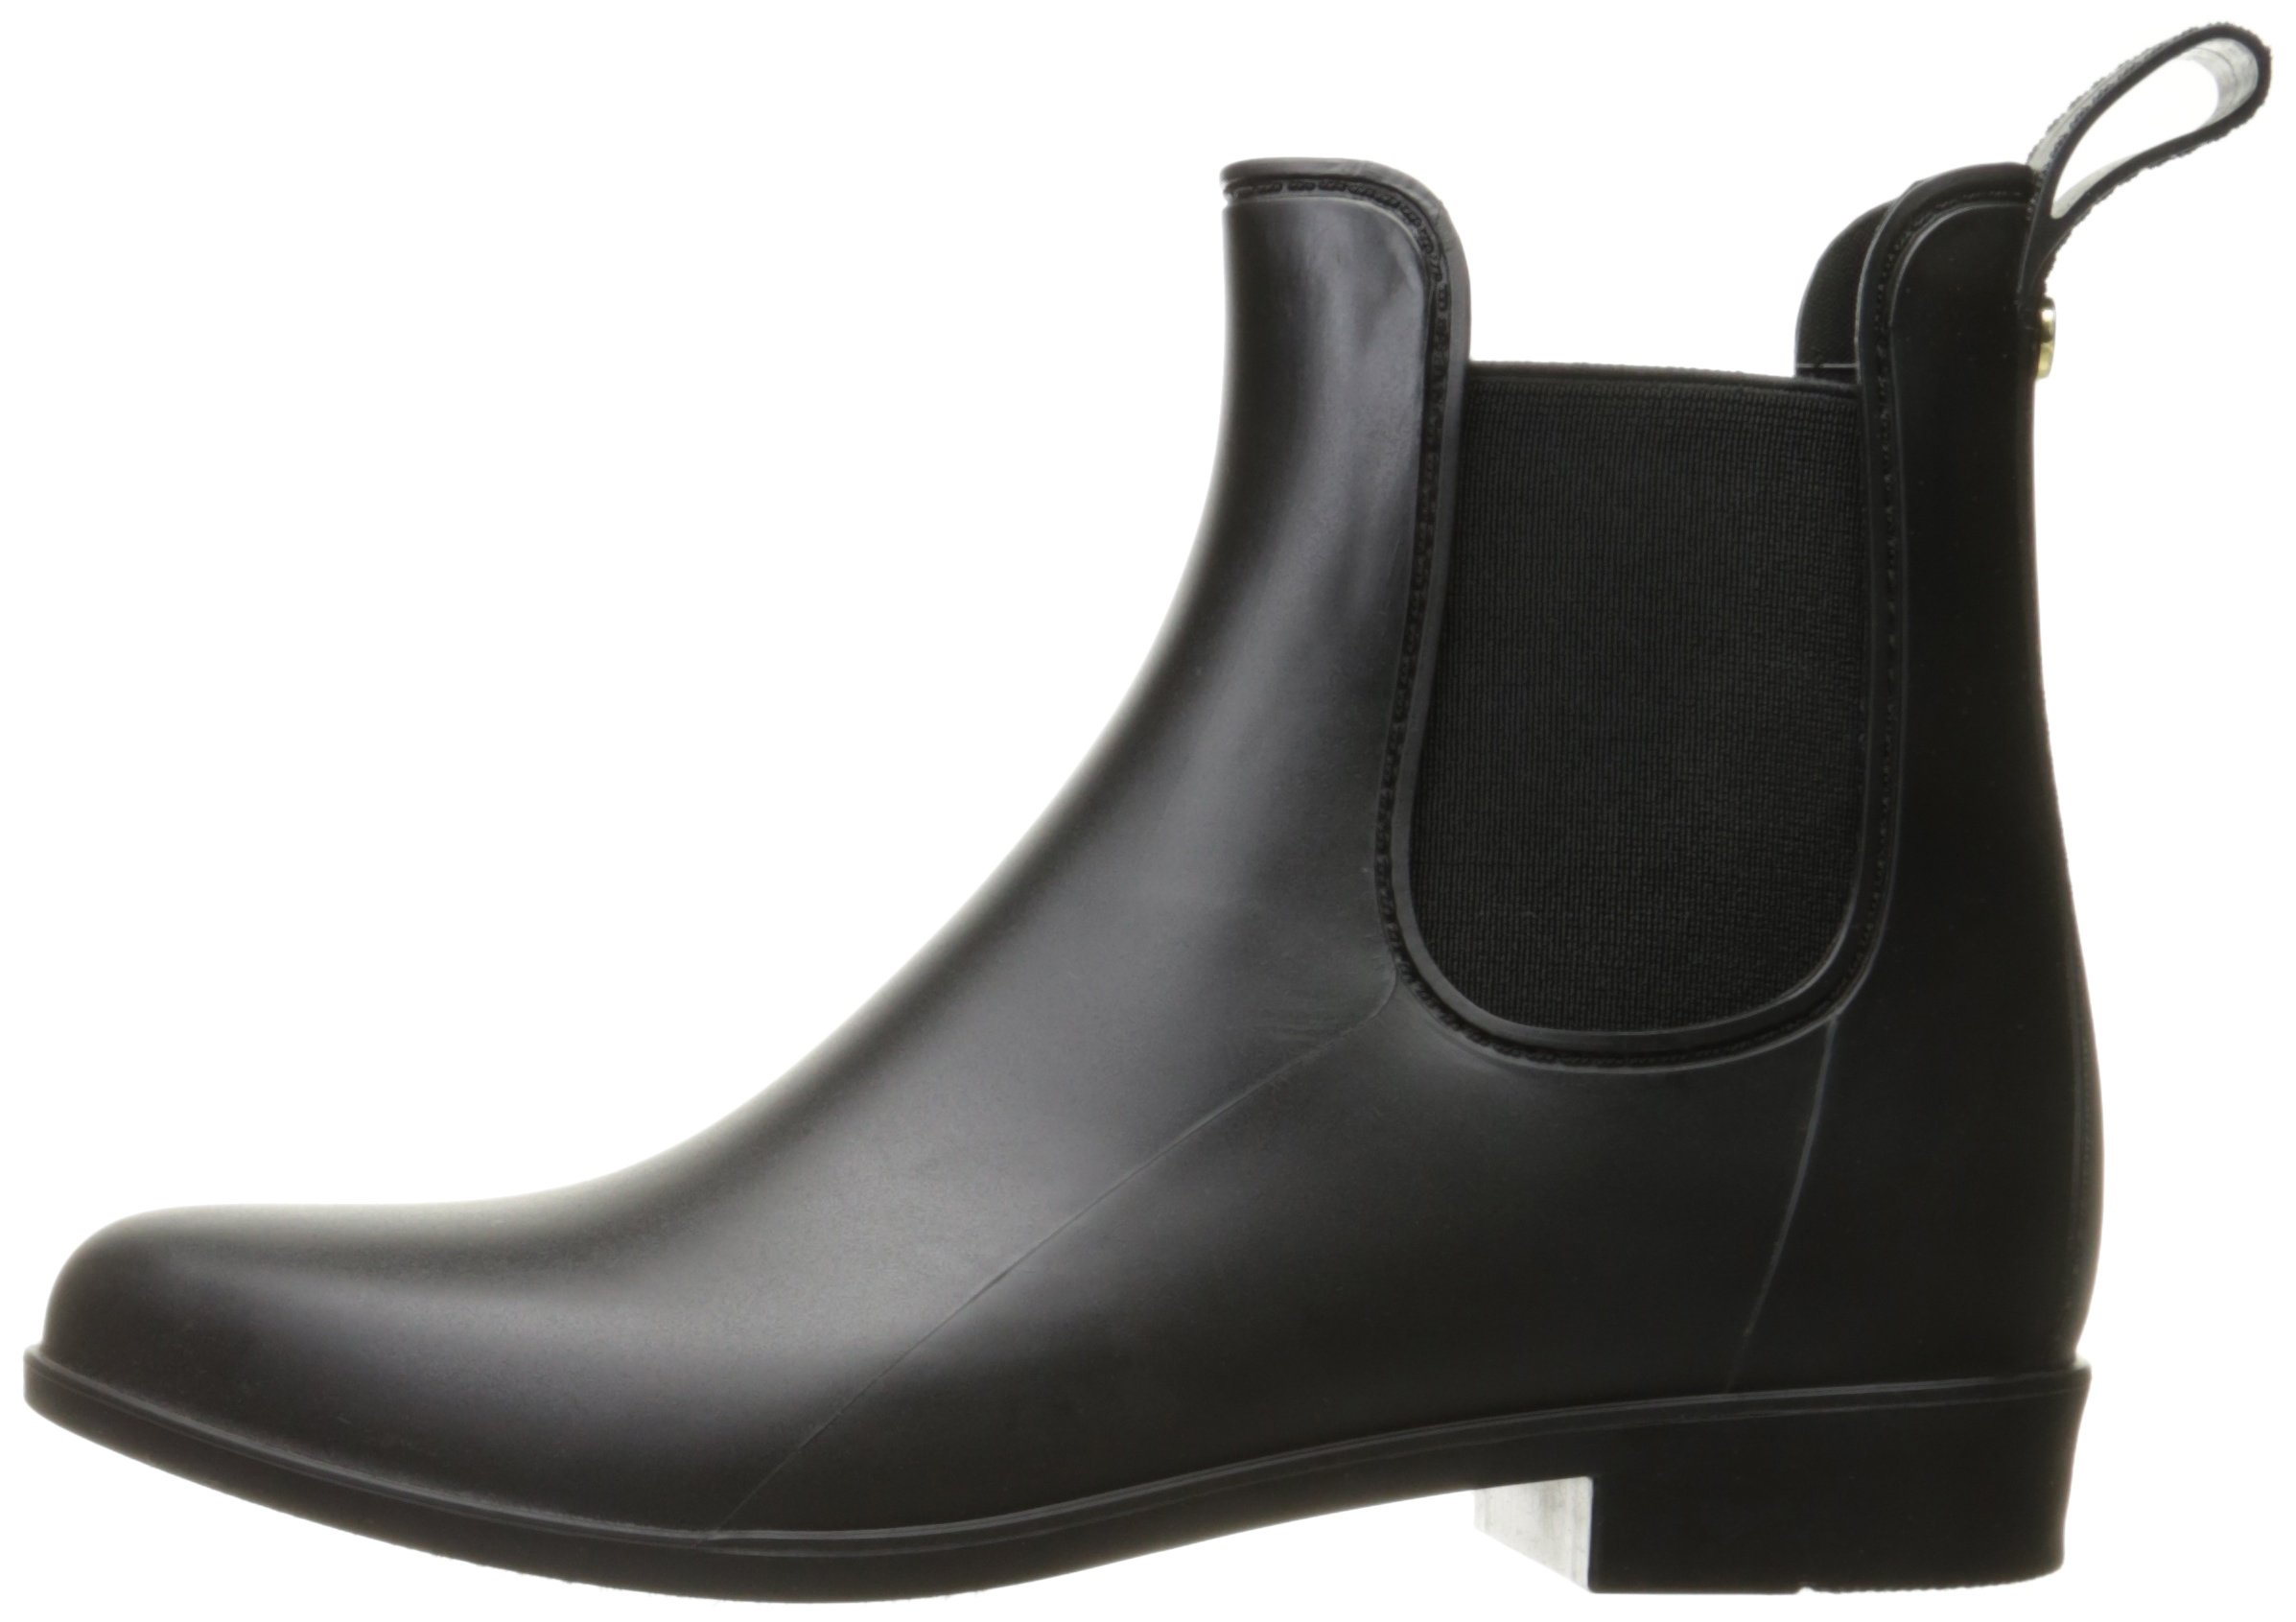 Sam Edelman Women's Tinsley Rain Boot, Black Matte, 9 M US by Sam Edelman (Image #5)